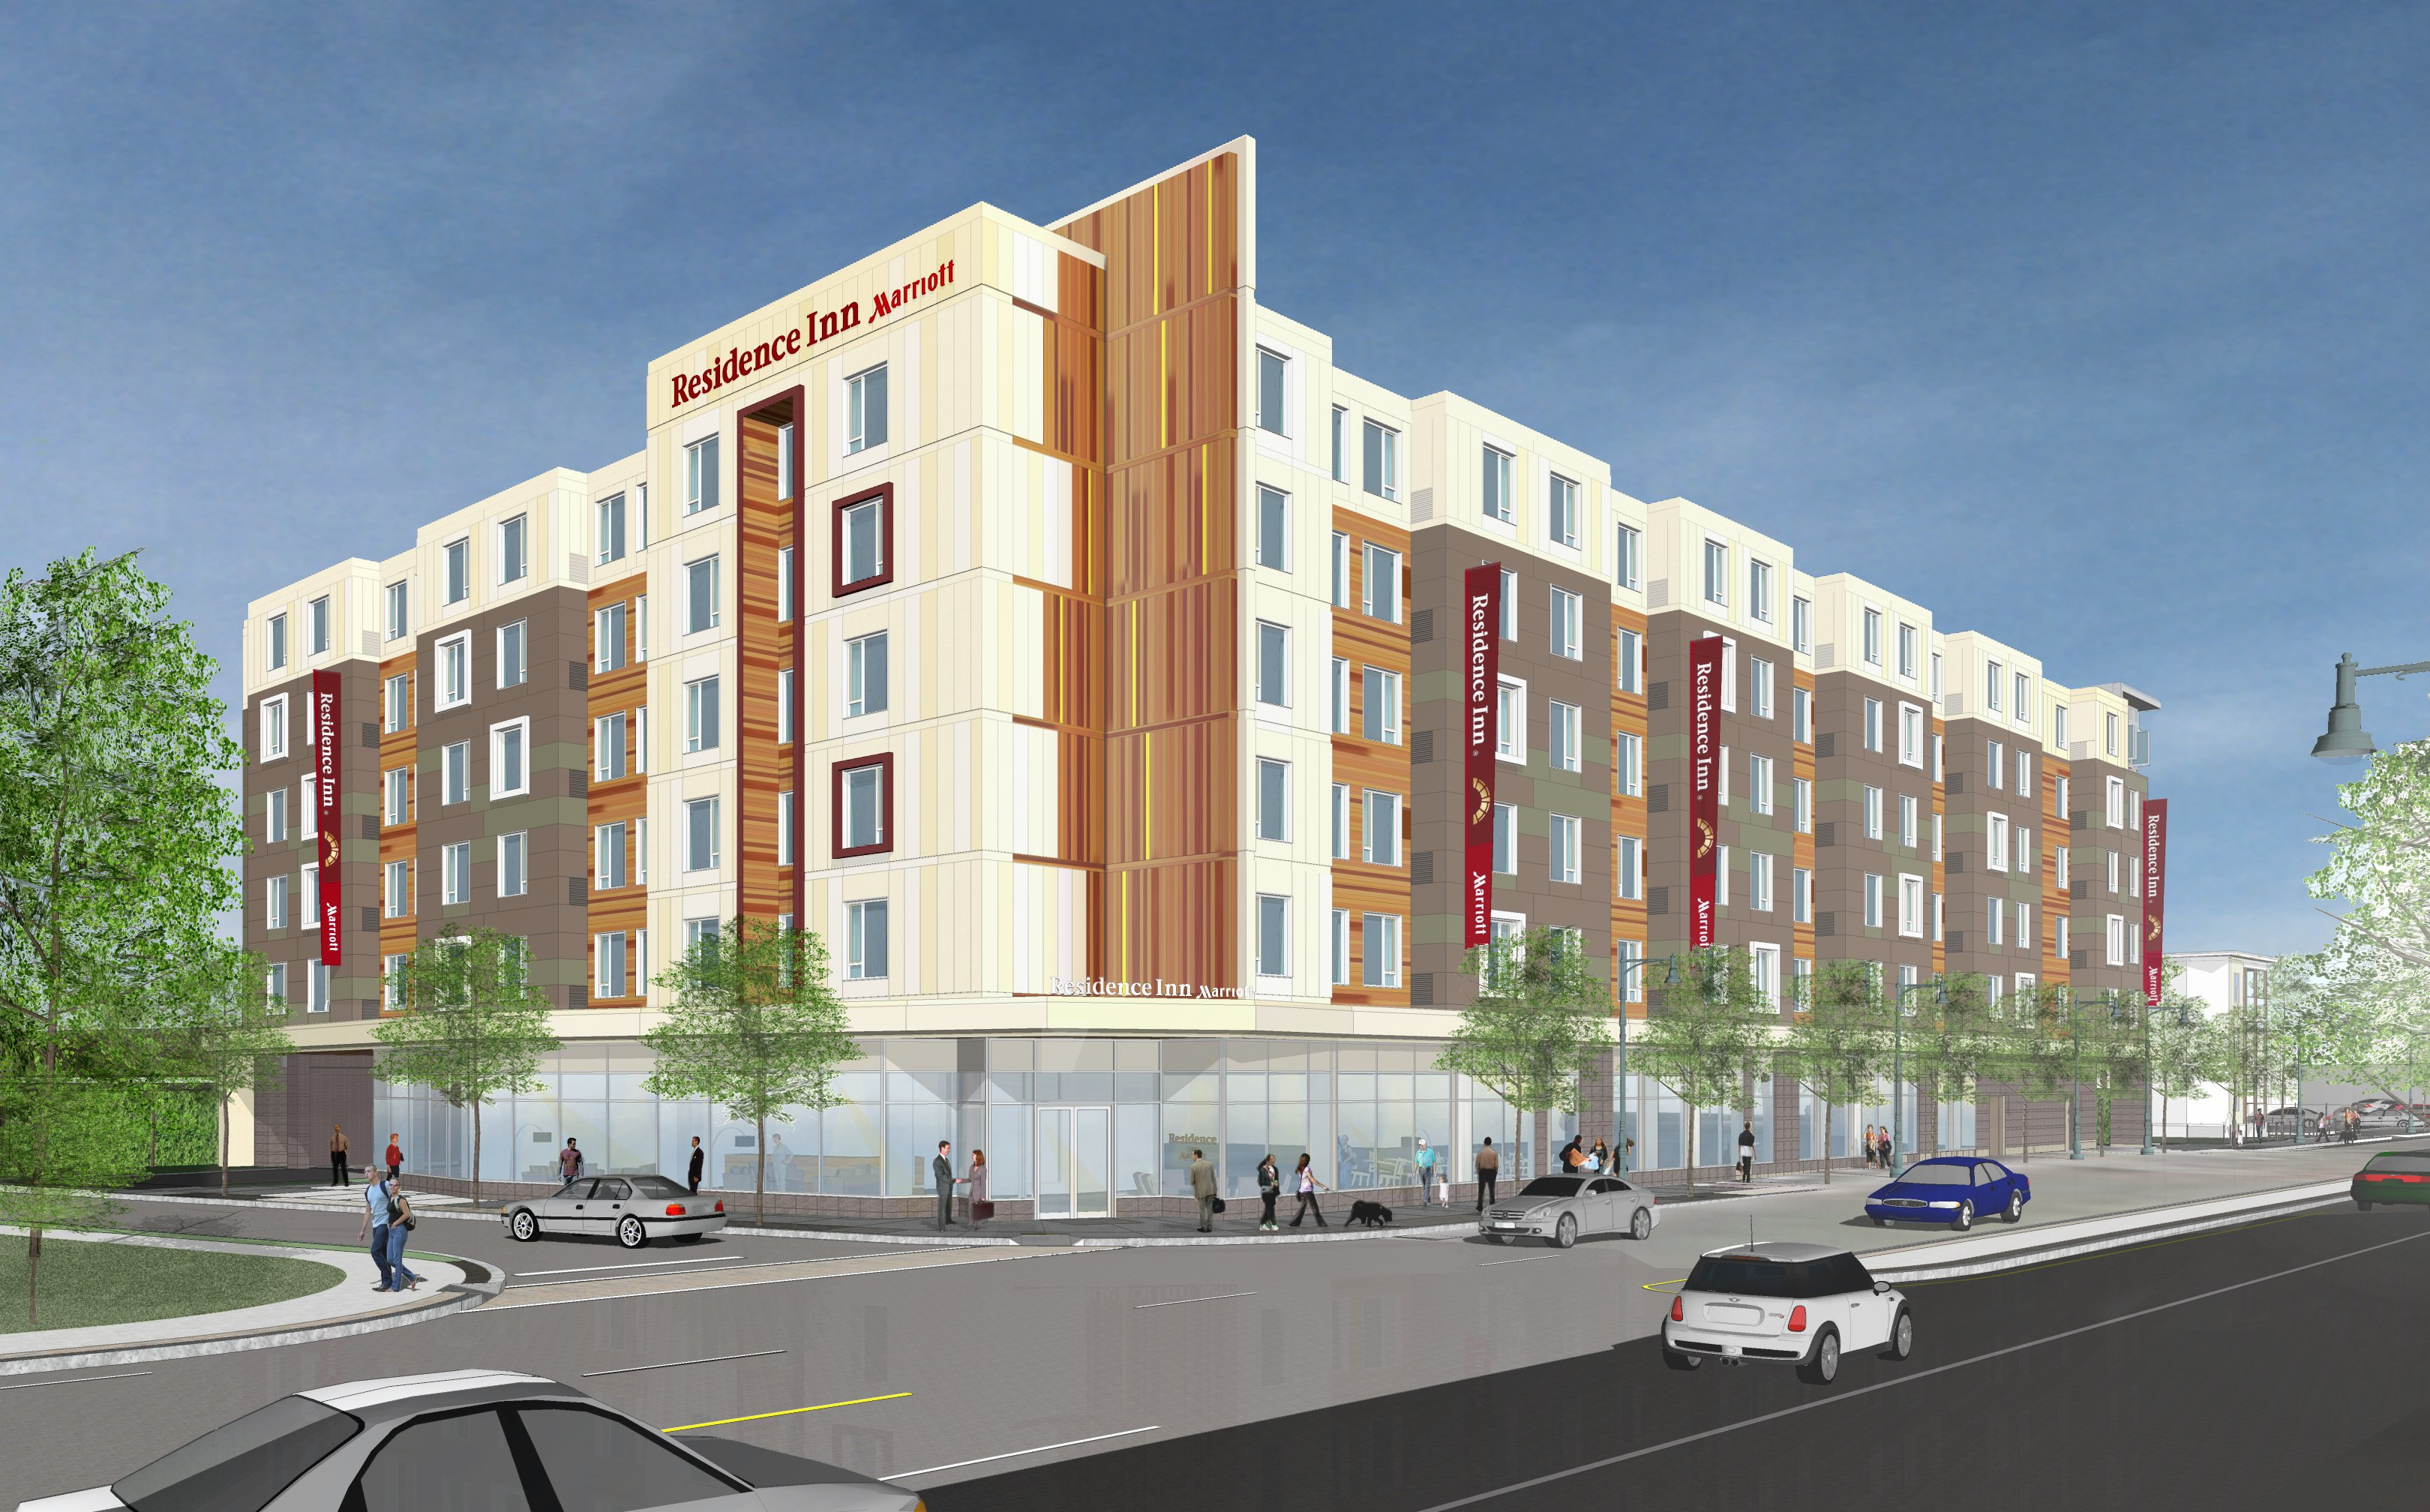 Guests Will Be Inspired At The New Toronto Marriott: Residence Inn Braintree Opens In Boston